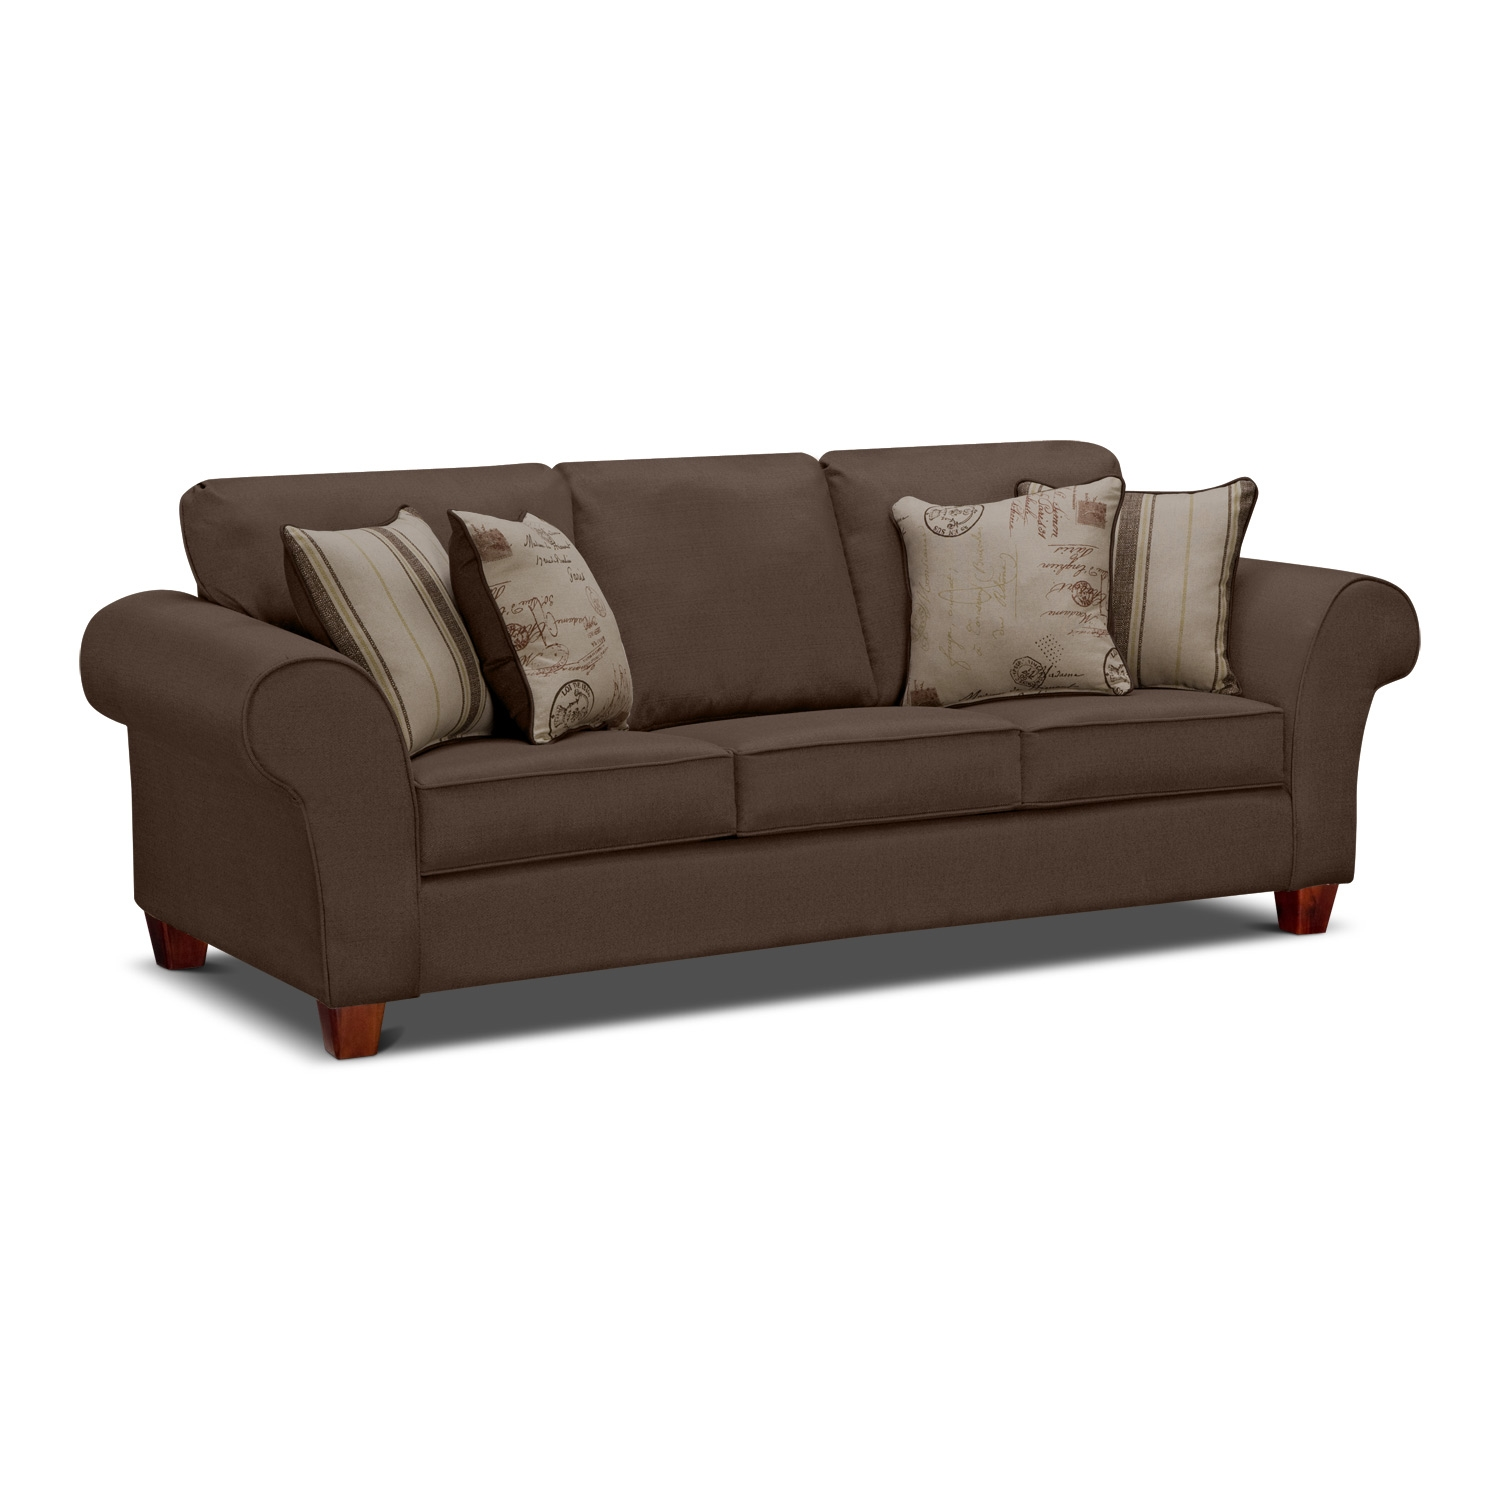 Sofas on sale ikea couch sofa ideas interior design for Ikea sofa set